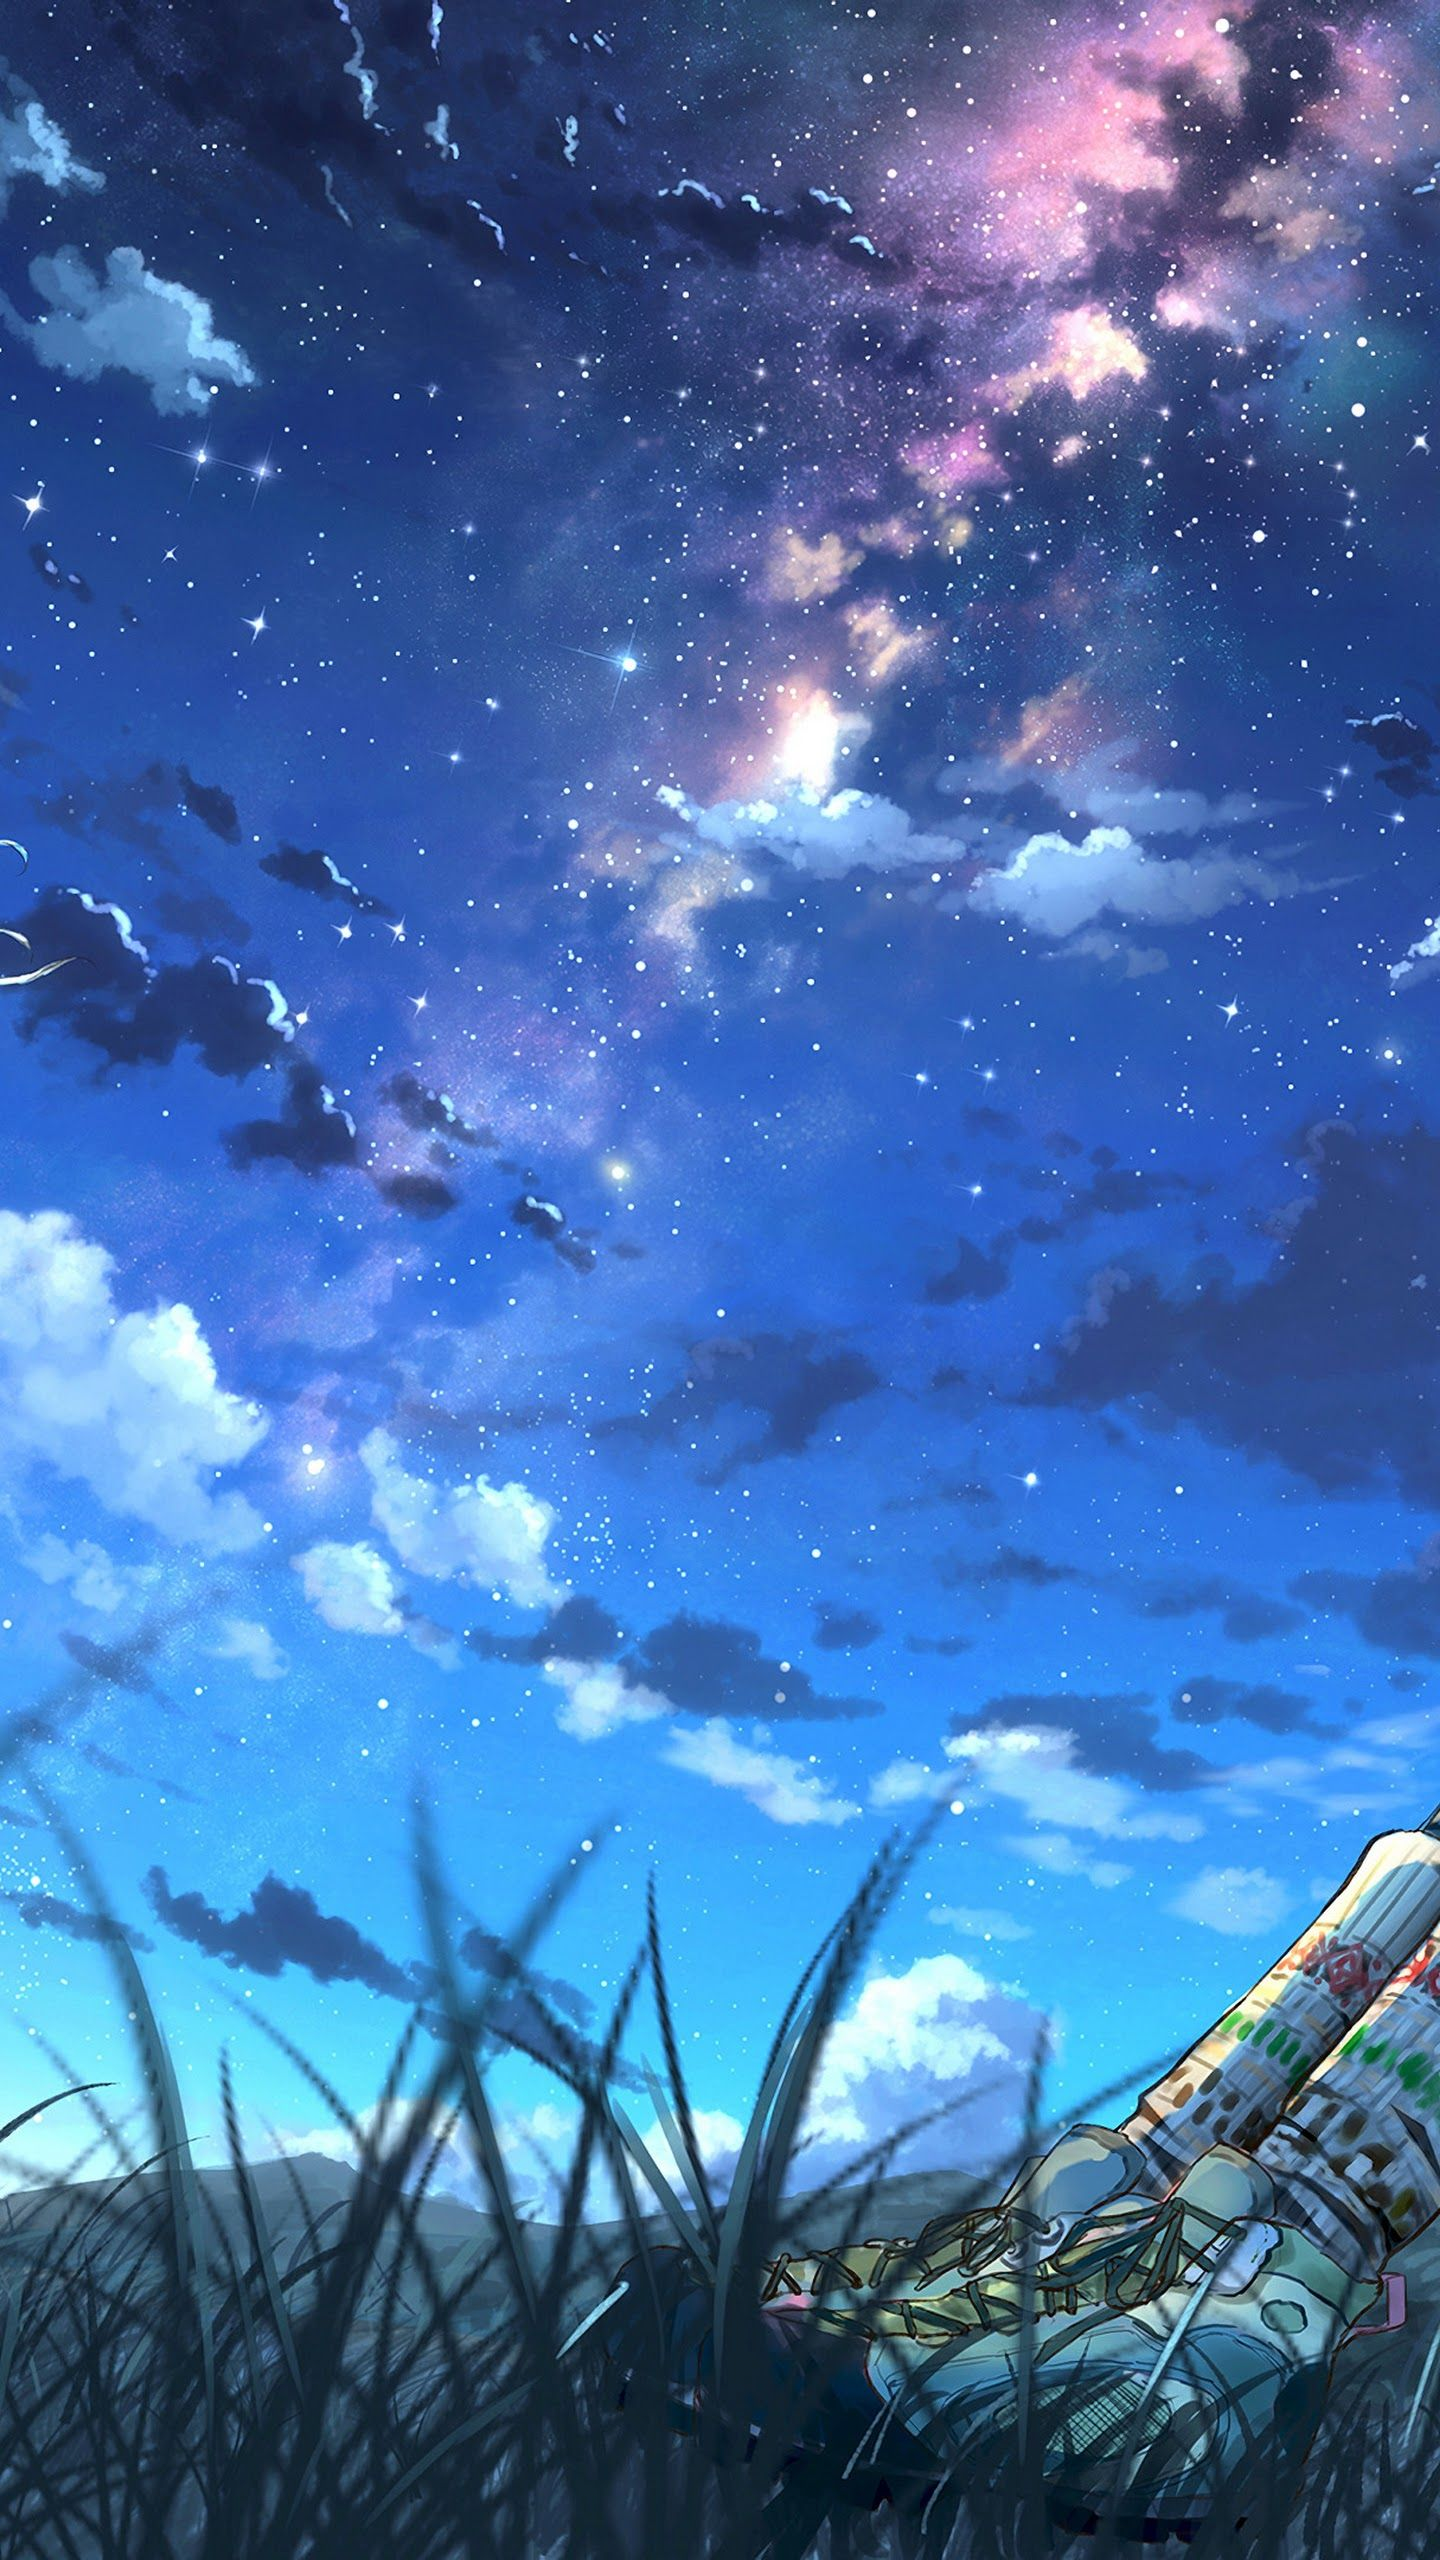 Anime Clouds 4k Wallpapers - Wallpaper Cave